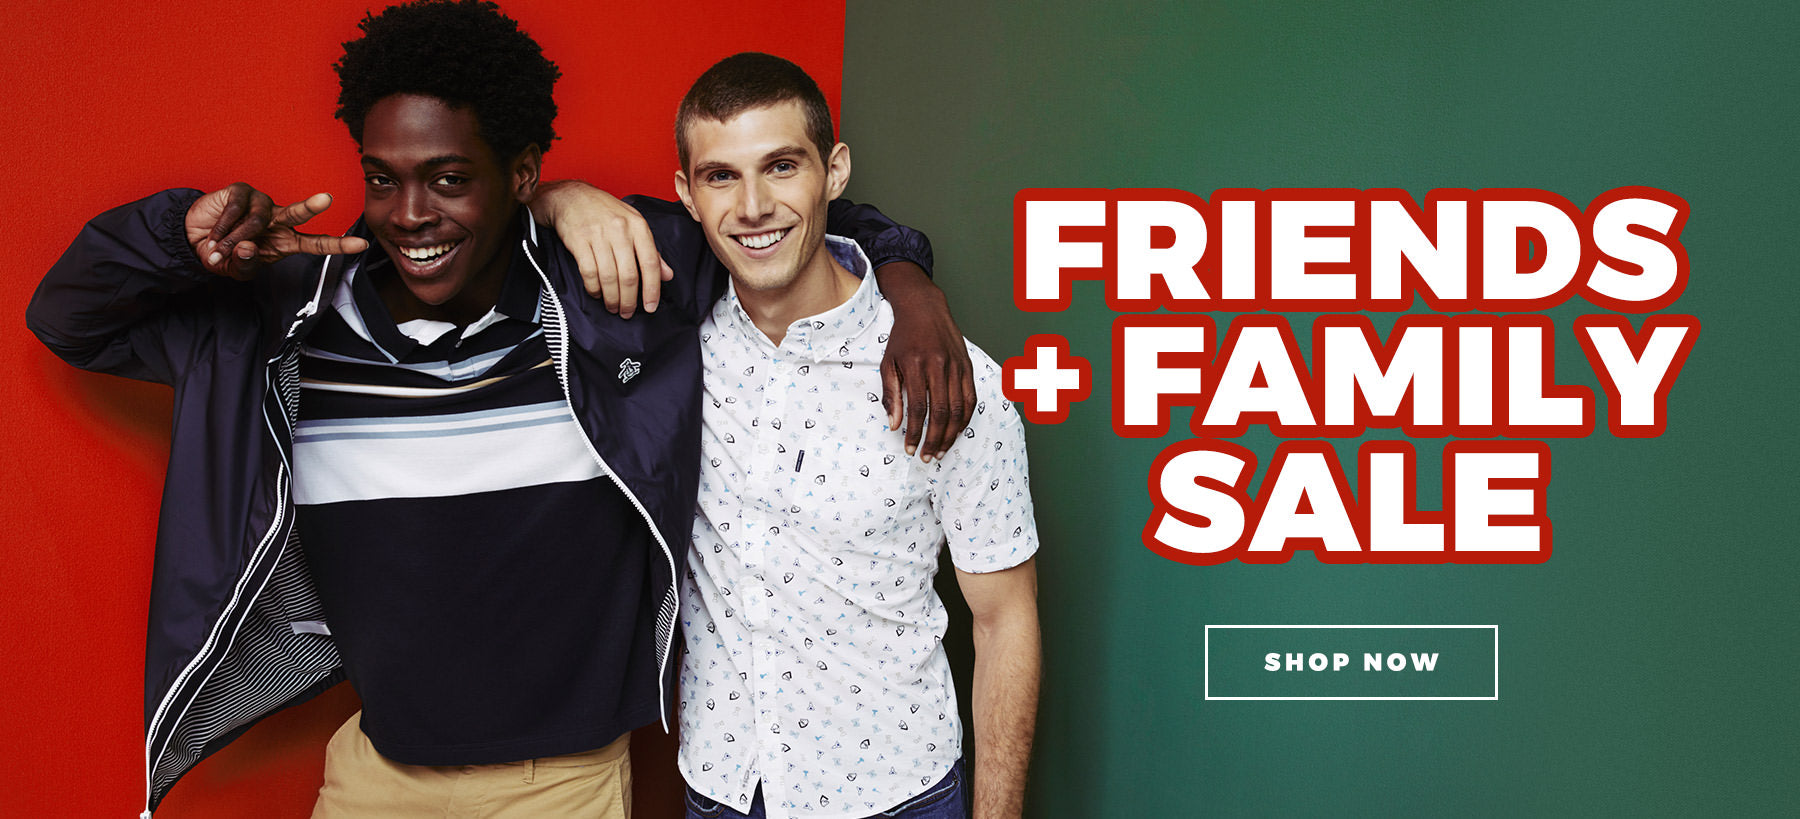 Friends and Family Sale - Shop Now